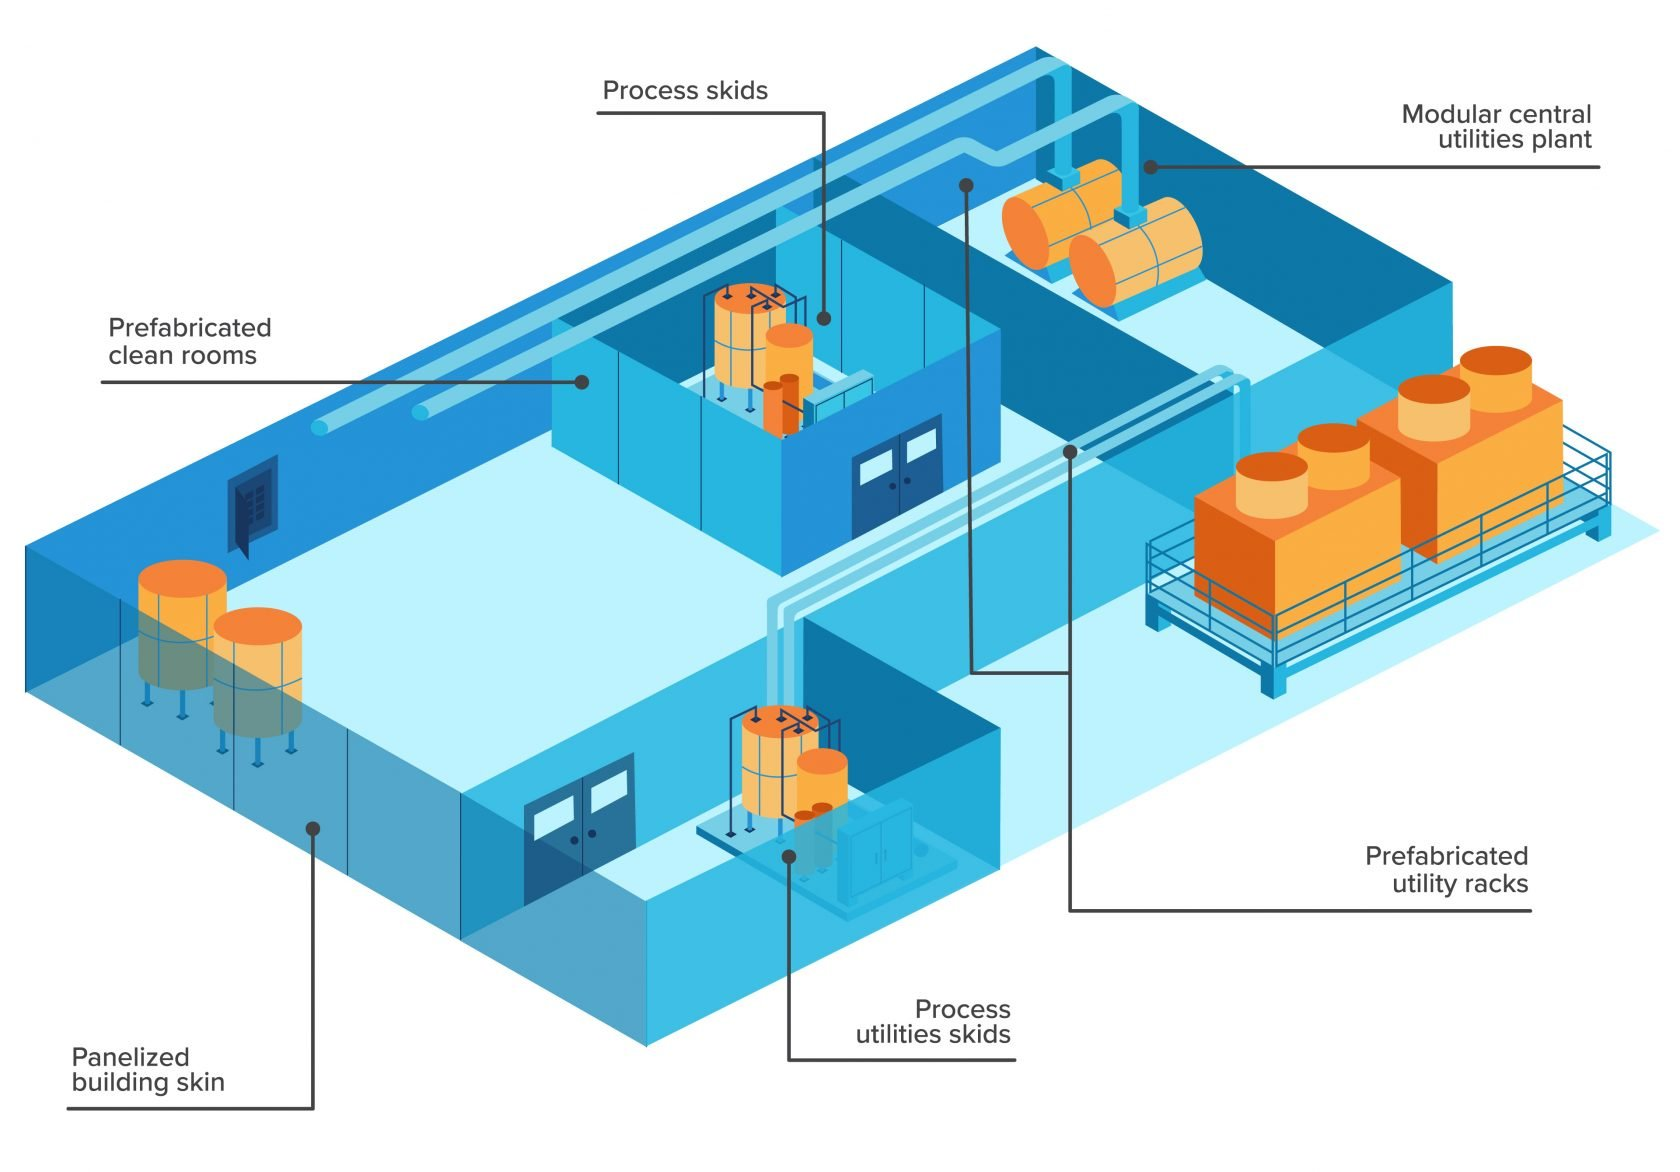 Prefabricated facility infographic